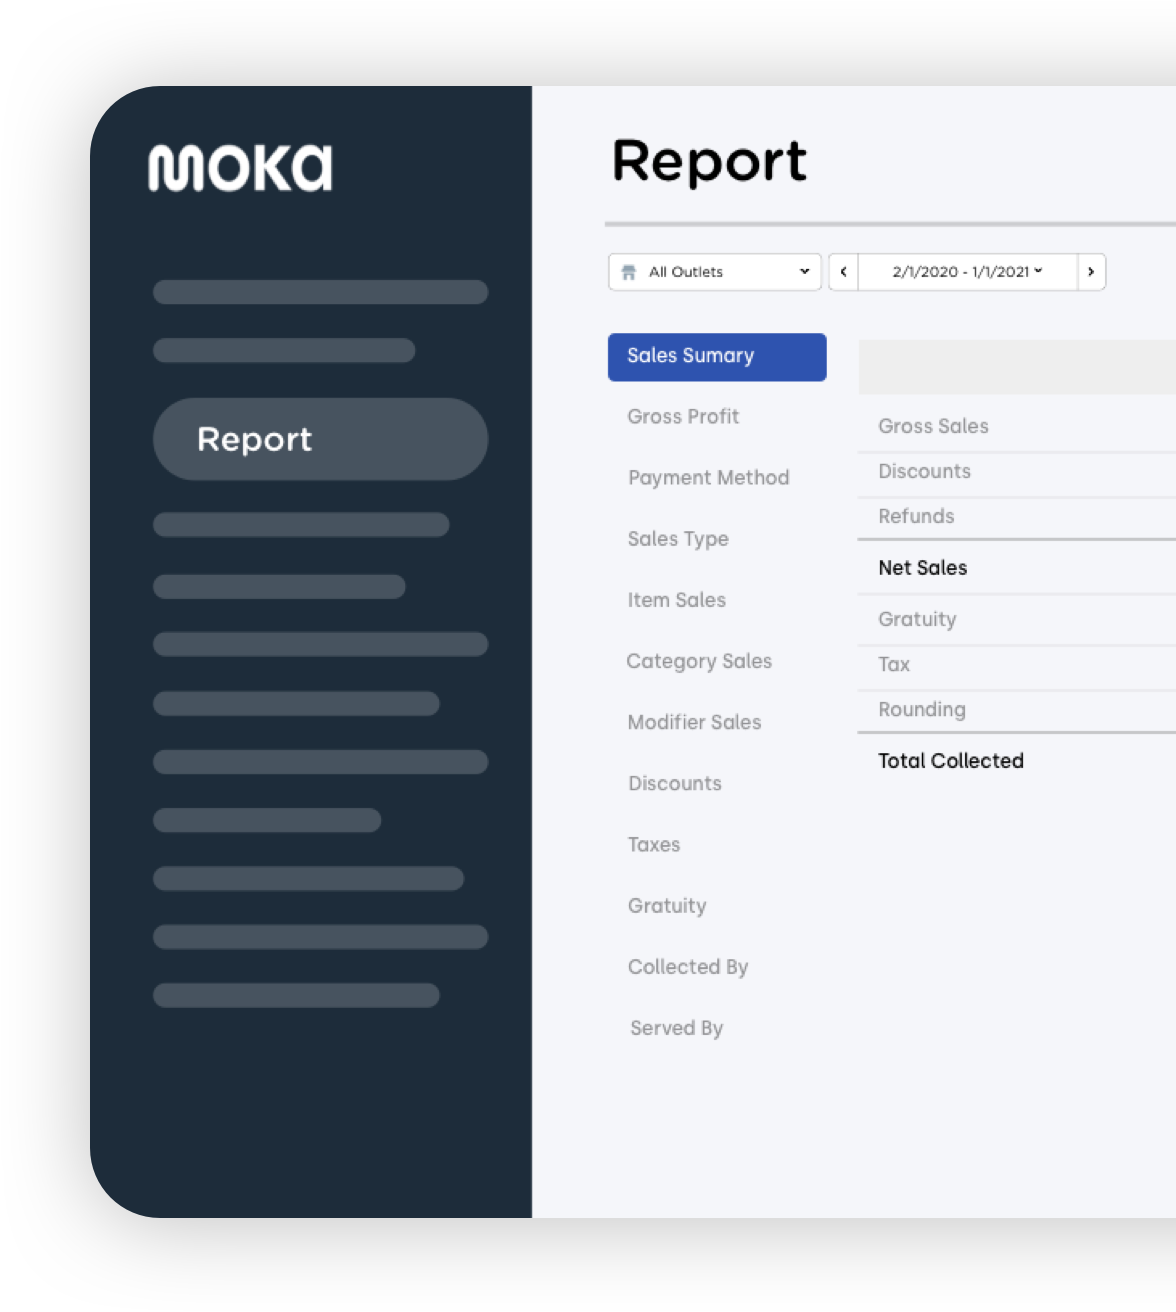 Moka point of sale application as an administrative solution to help for daily sales reports, inventory, and tax calculations